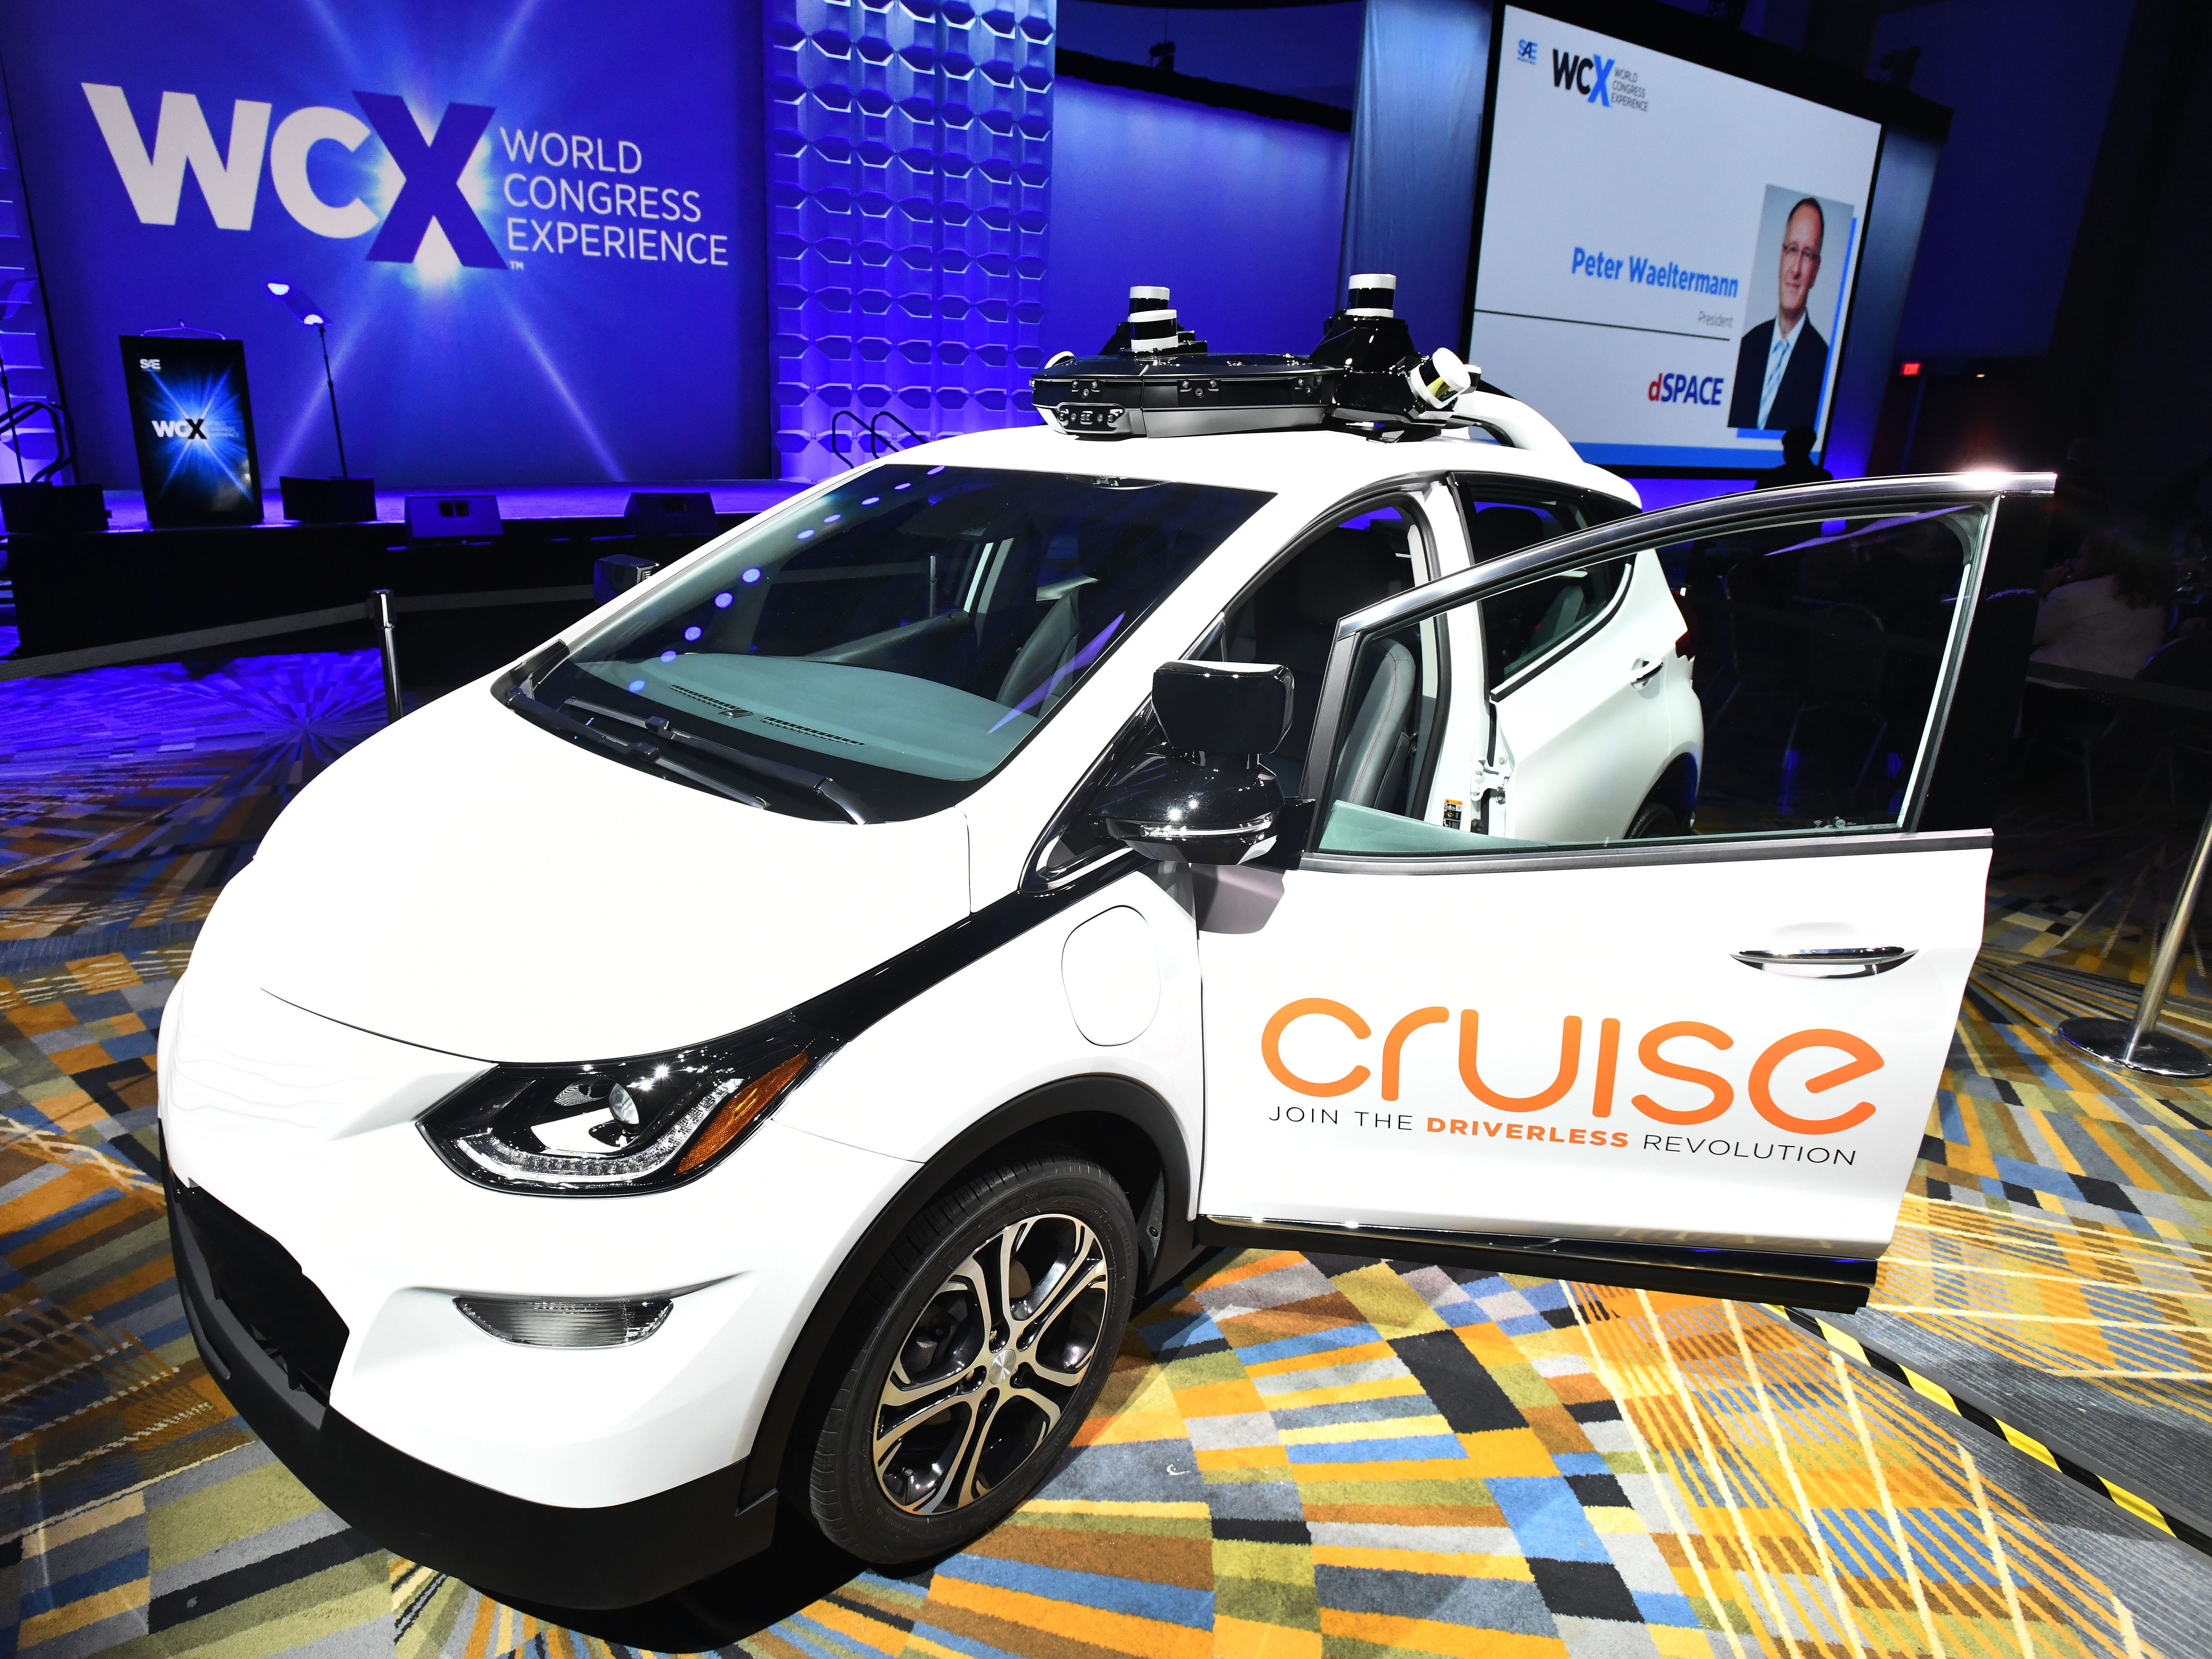 Costs temper hype on road to autonomous vehicles